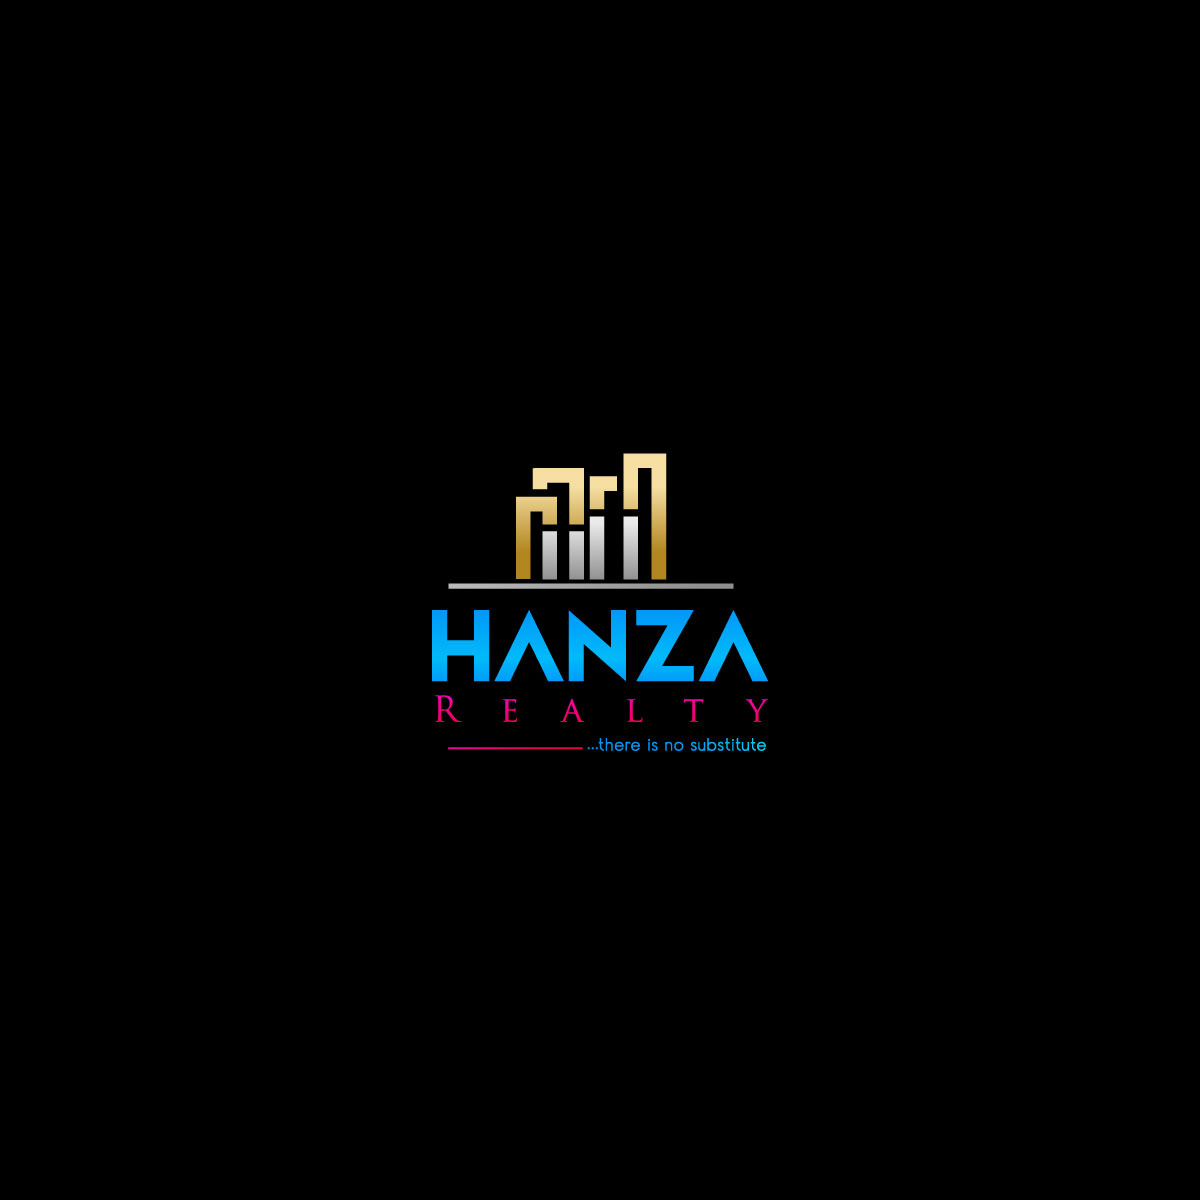 Logo Design by M h Rubel - Entry No. 356 in the Logo Design Contest Logo Design for Hanza Realty.